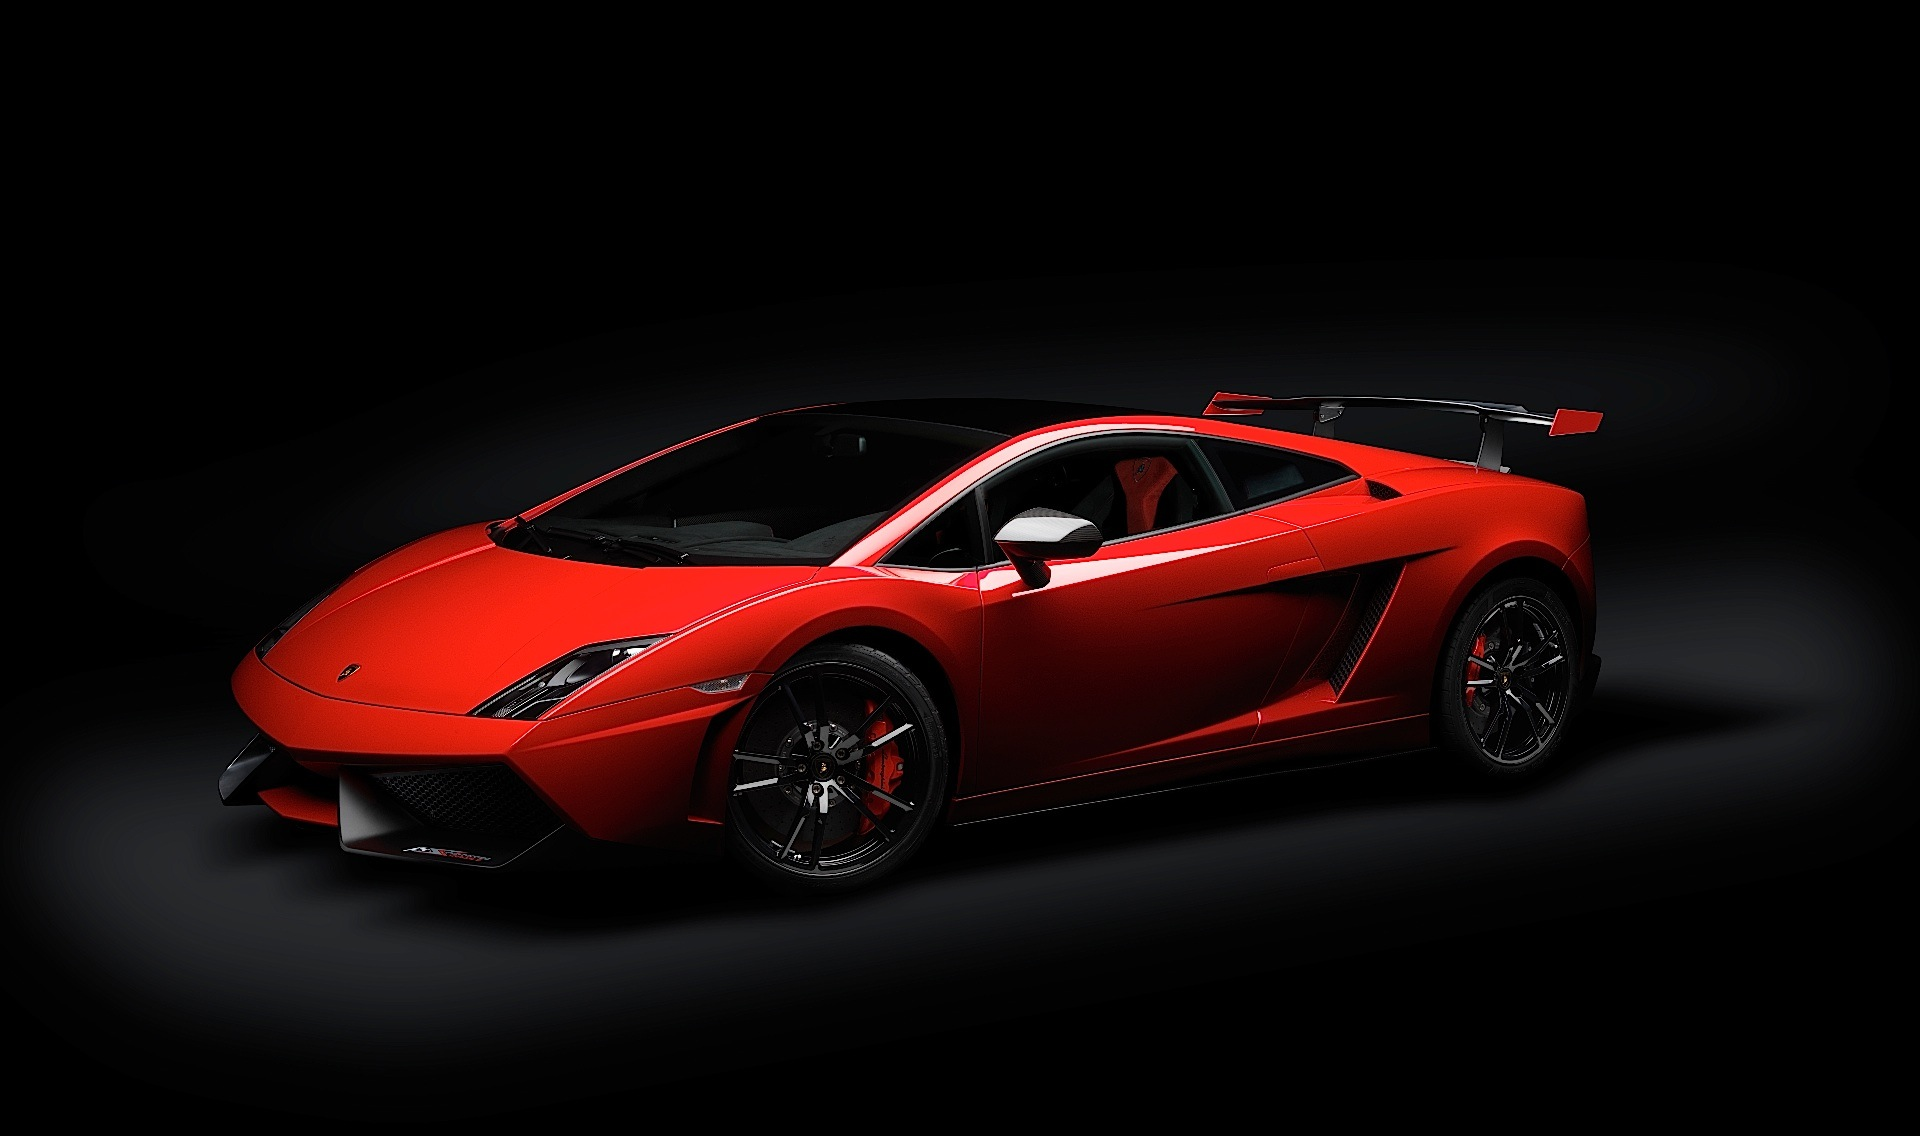 lamborghini gallardo lp 570 4 super trofeo stradale 2011 2012 2013 autoevolution. Black Bedroom Furniture Sets. Home Design Ideas